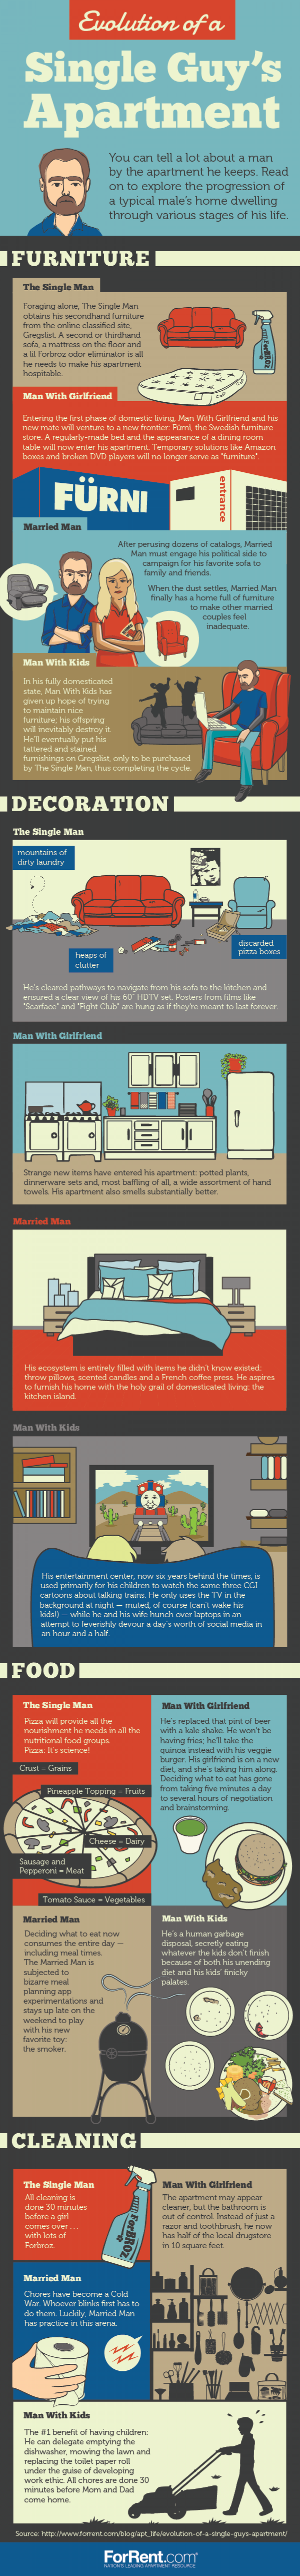 How to Tell More About a Man's Life by Looking at Their Apartment? Infographic